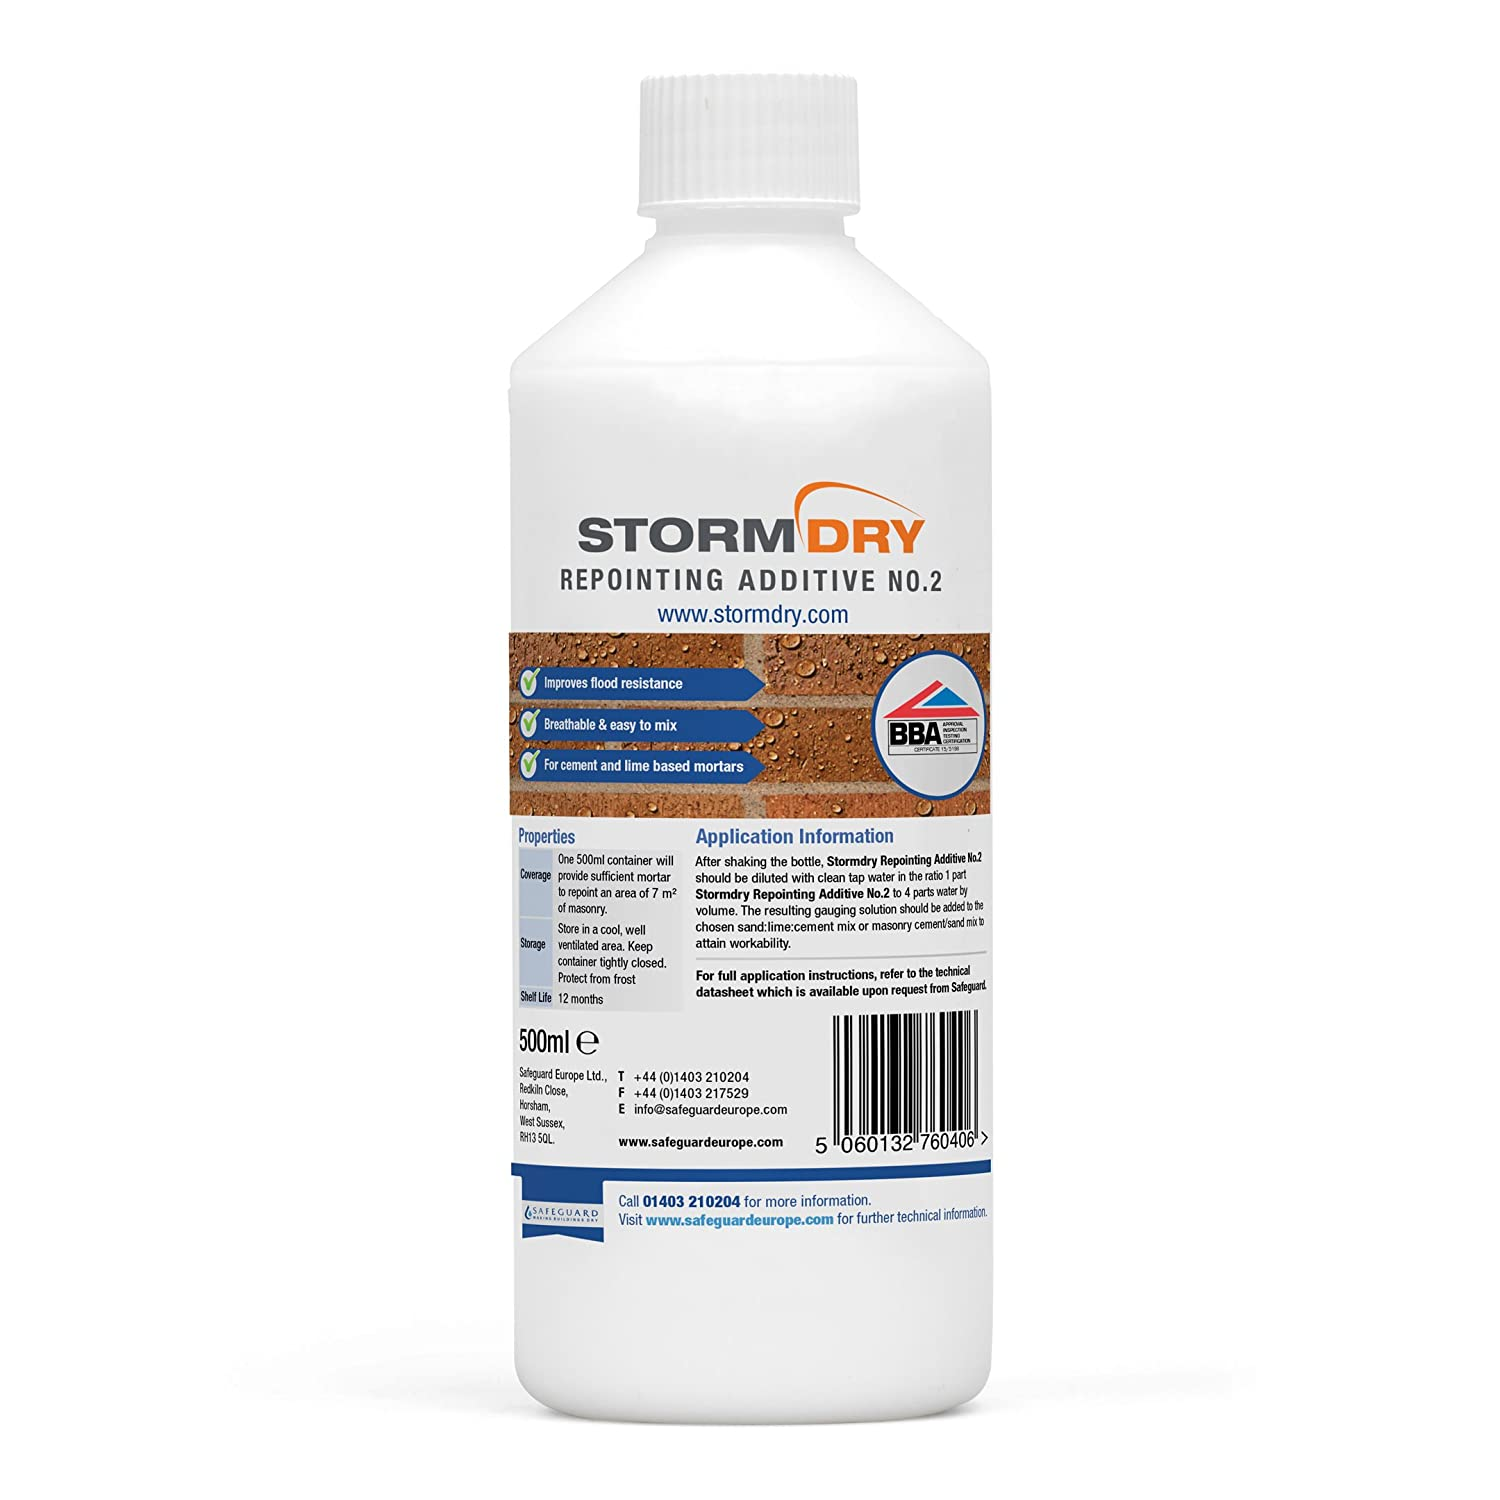 Stormdry Repointing Additive No2 - Repointing - Increase Water Resistance Safeguard Europe Ltd